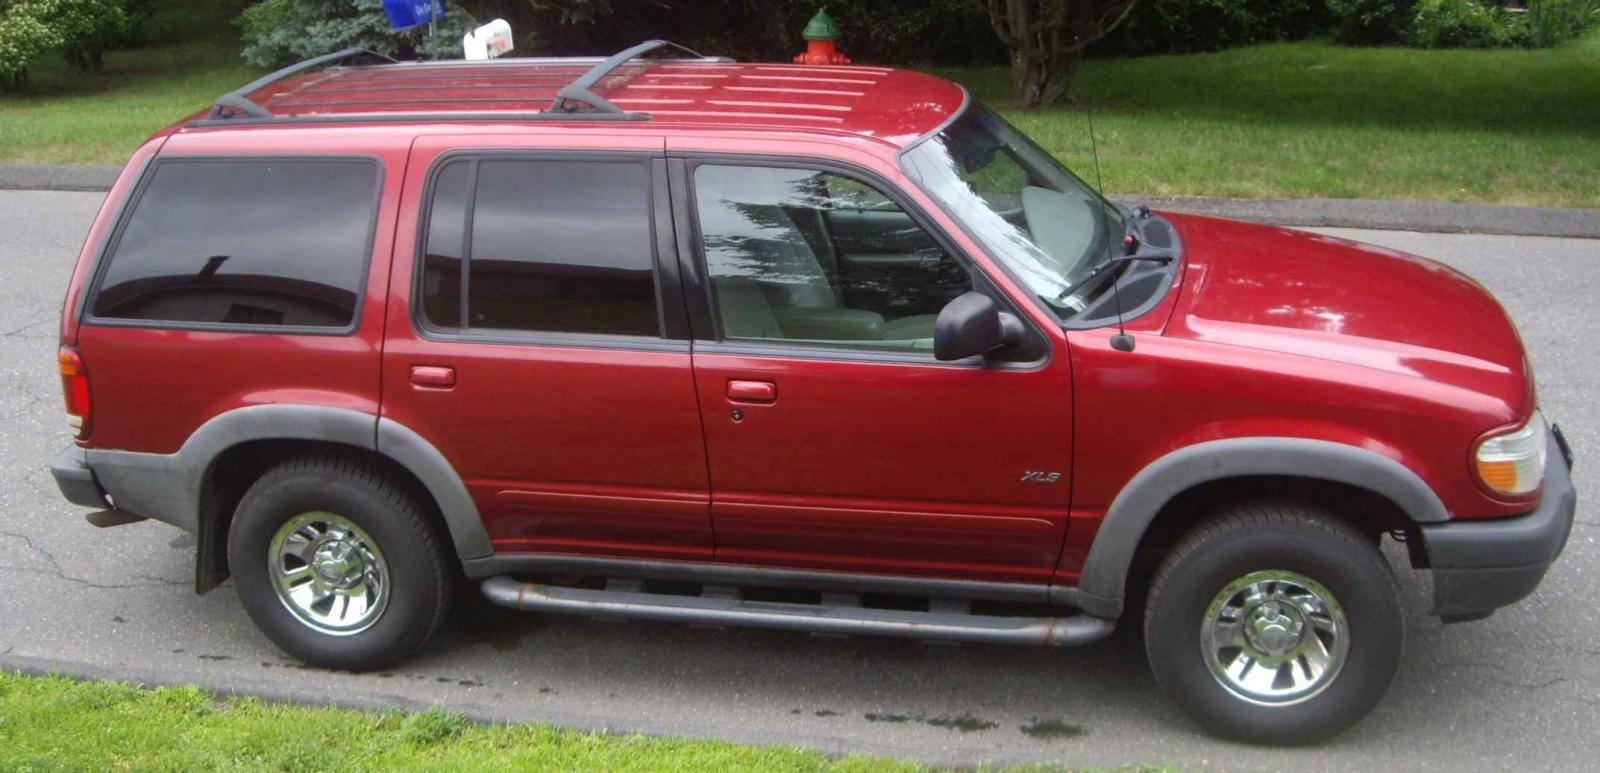 2001 ford explorer information and photos zombiedrive. Black Bedroom Furniture Sets. Home Design Ideas